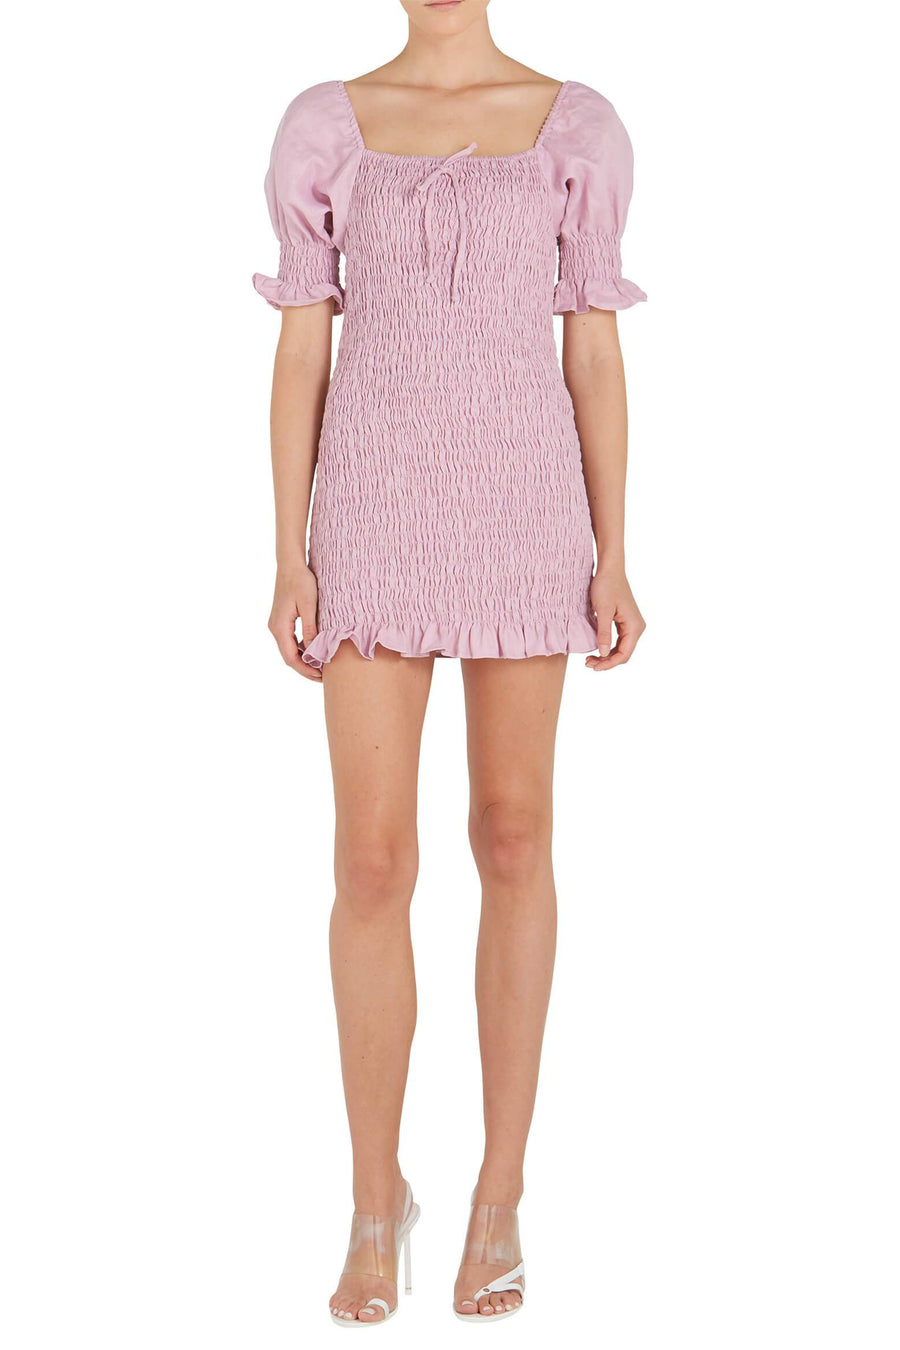 Faithfull The Brand Annibelis Mini Dress in Plain Iris from The New Trend